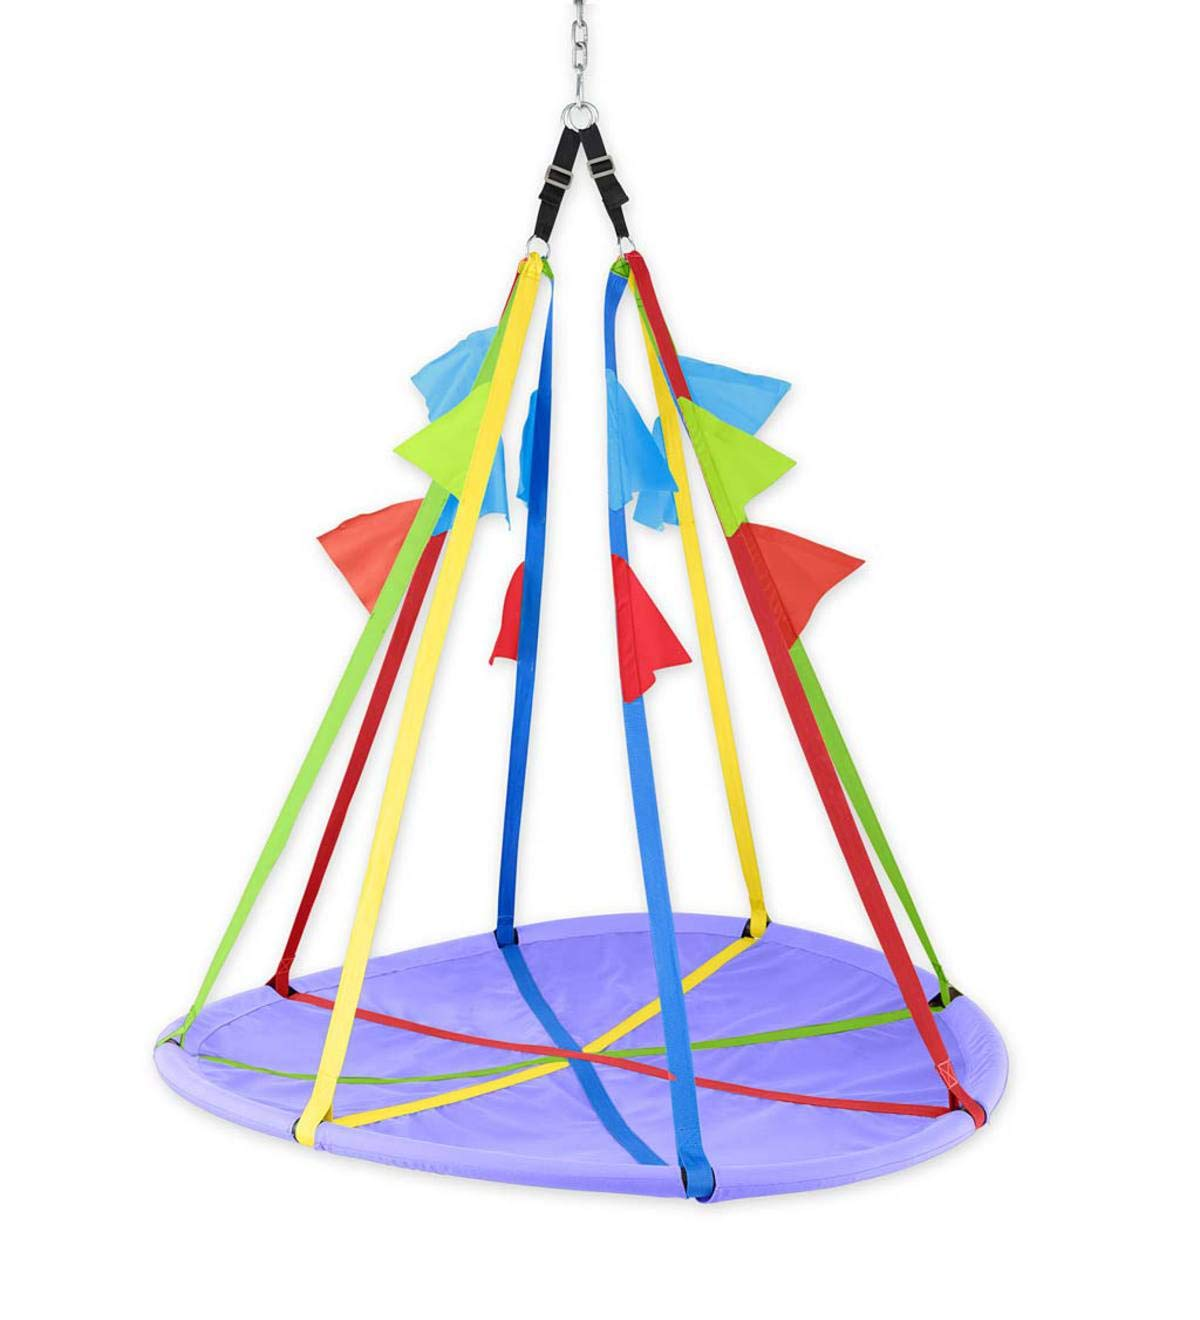 HearthSong® Rainbow Flag Giant Outdoor Platform Tree Swing for Children - Backyard Playground Equipment - Seat: Approx. 58 '' diam. Adjustable Straps: Approx. 58 L and Extend Another 3 Inches by HearthSong® (Image #1)